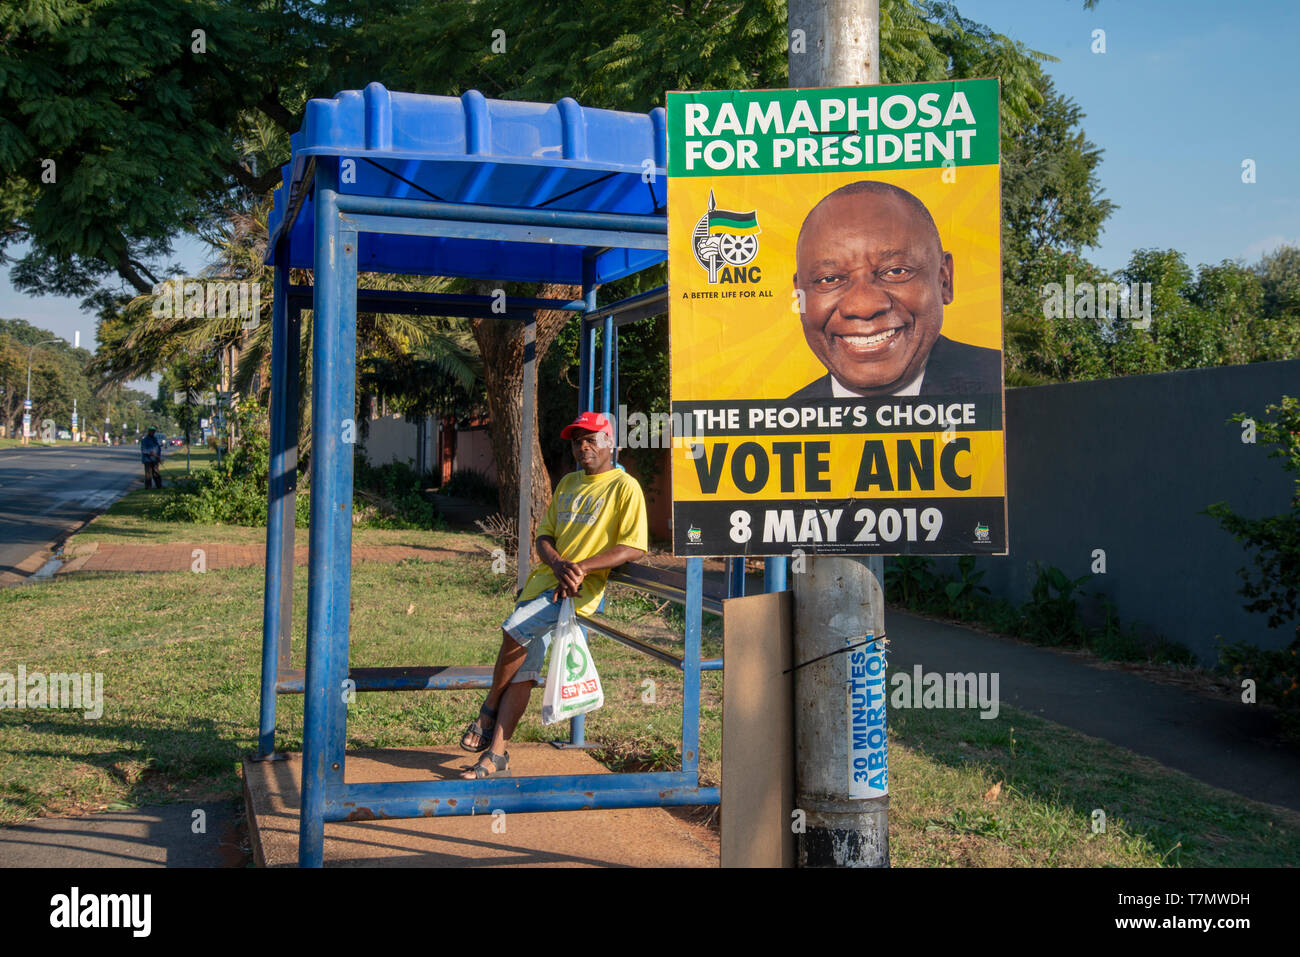 Johannesburg, South Africa, 7th May, 2019. A man waits at a bus stop as an ANC election poster is seen in Emmarentia on the eve of national elections, May 8. Credit: Eva-Lotta Jansson/Alamy - Stock Image